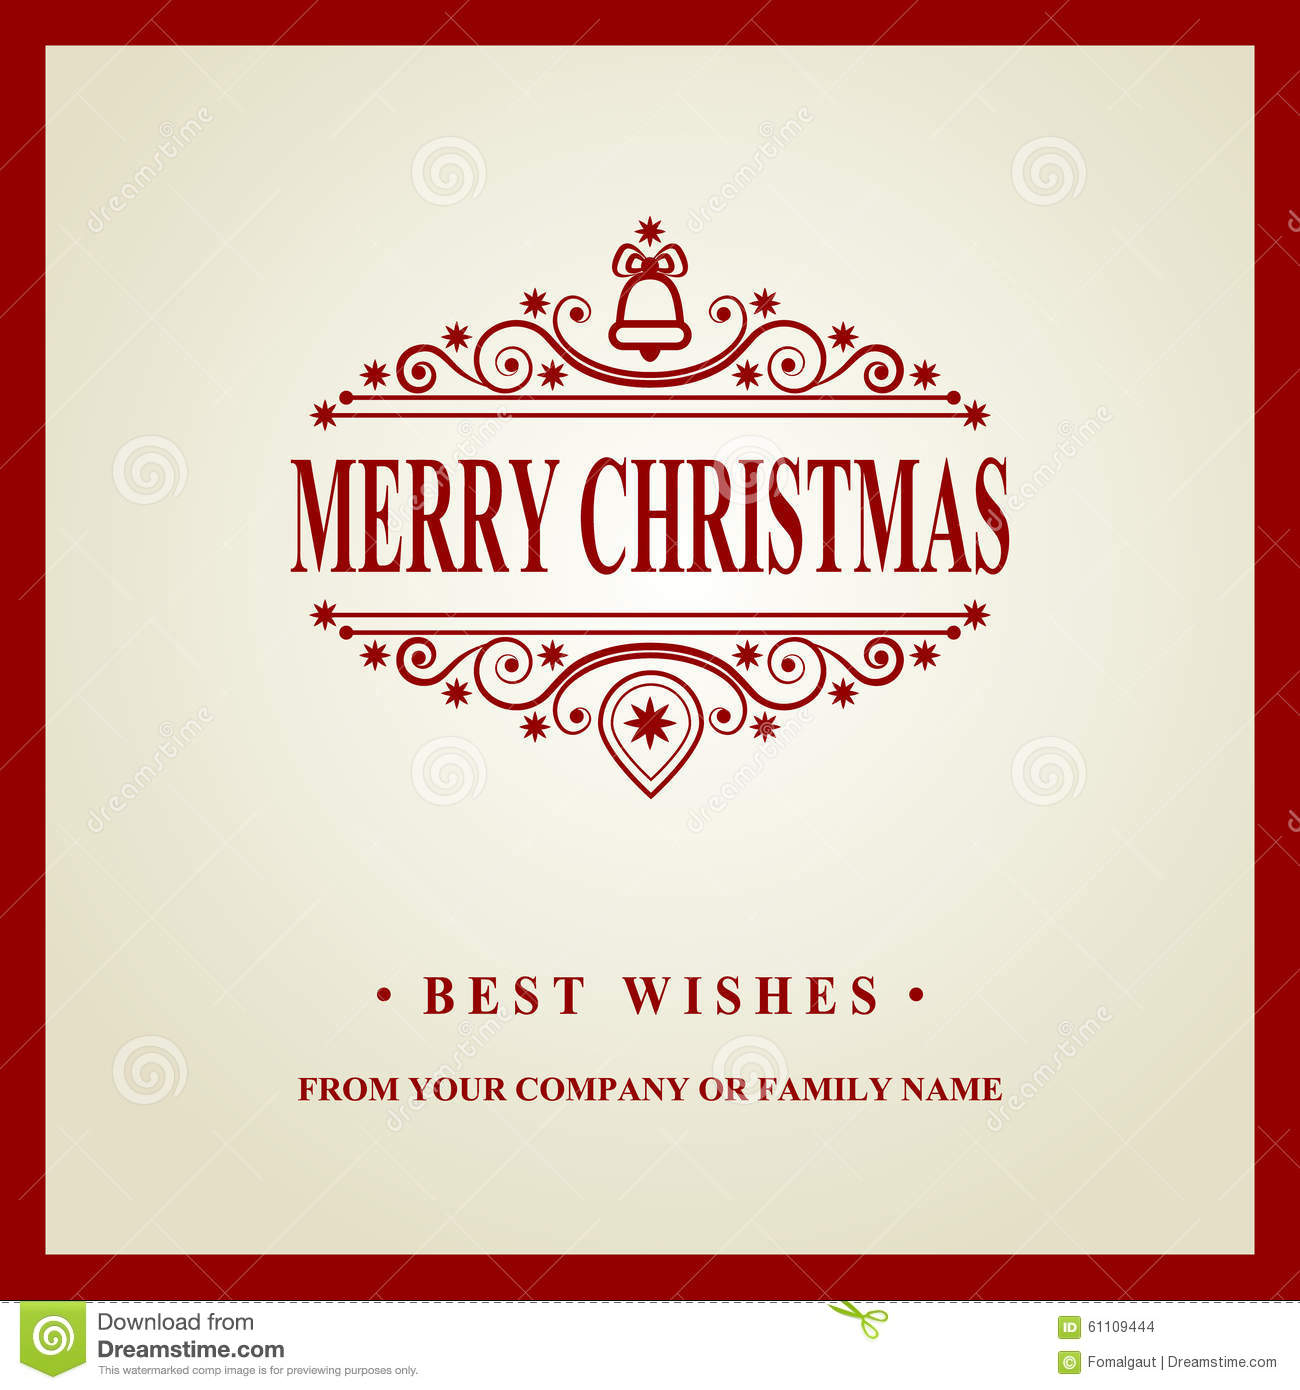 Happy New Year Message Merry Christmas Holidays Wish Greeting Card